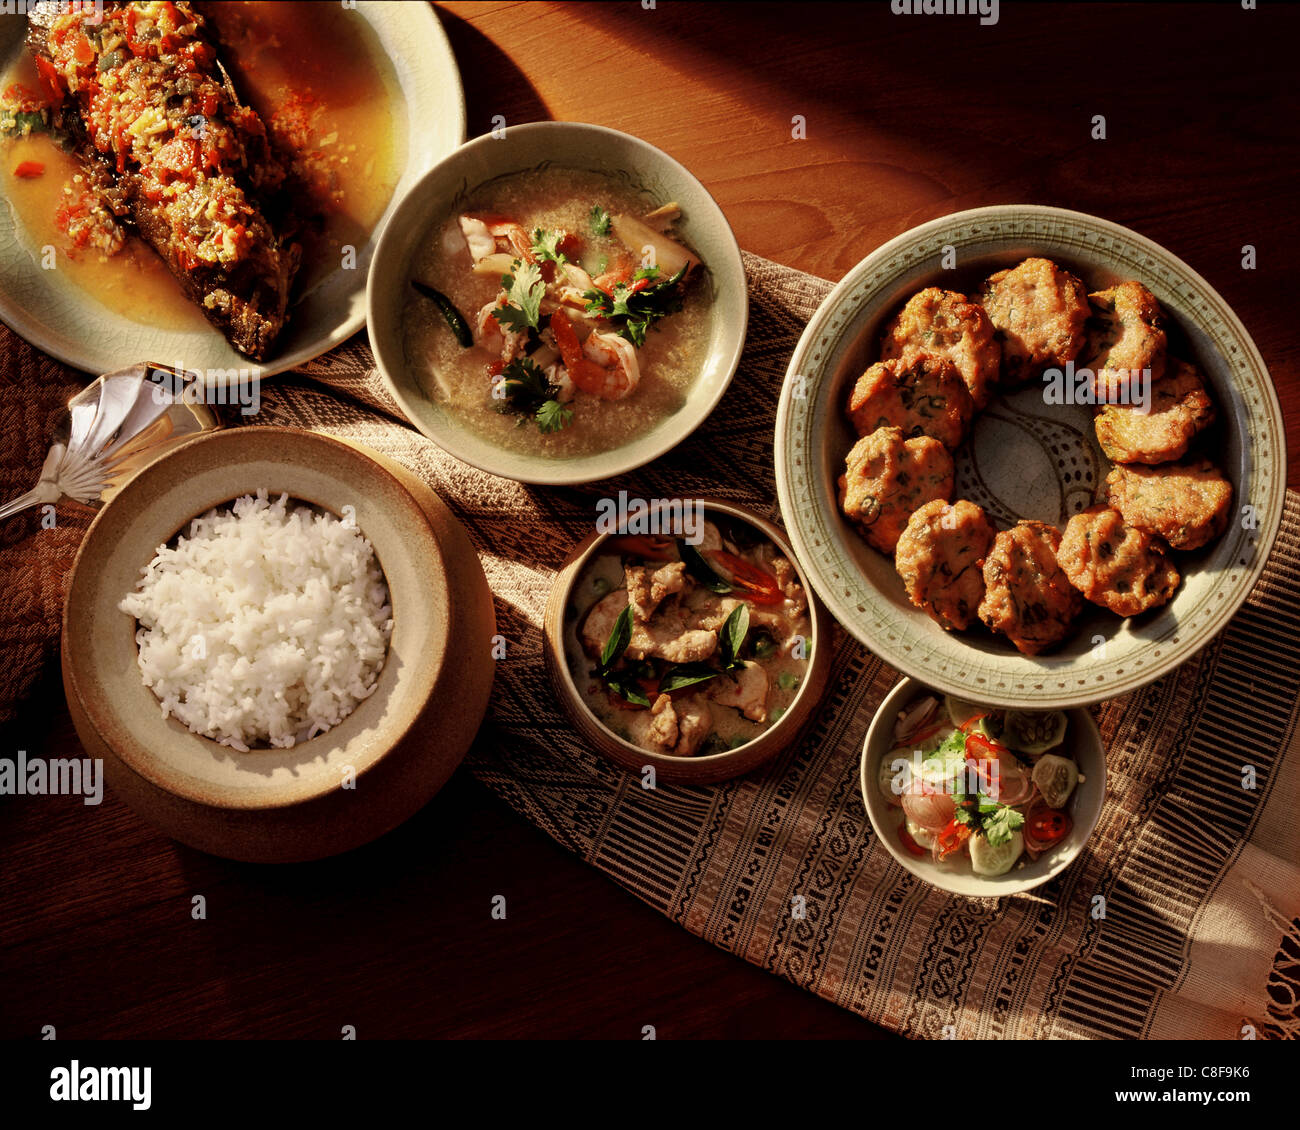 Thai meal,thom yam soup, weet and sour fish, fish patties, a curry dish and rice, Thailand - Stock Image